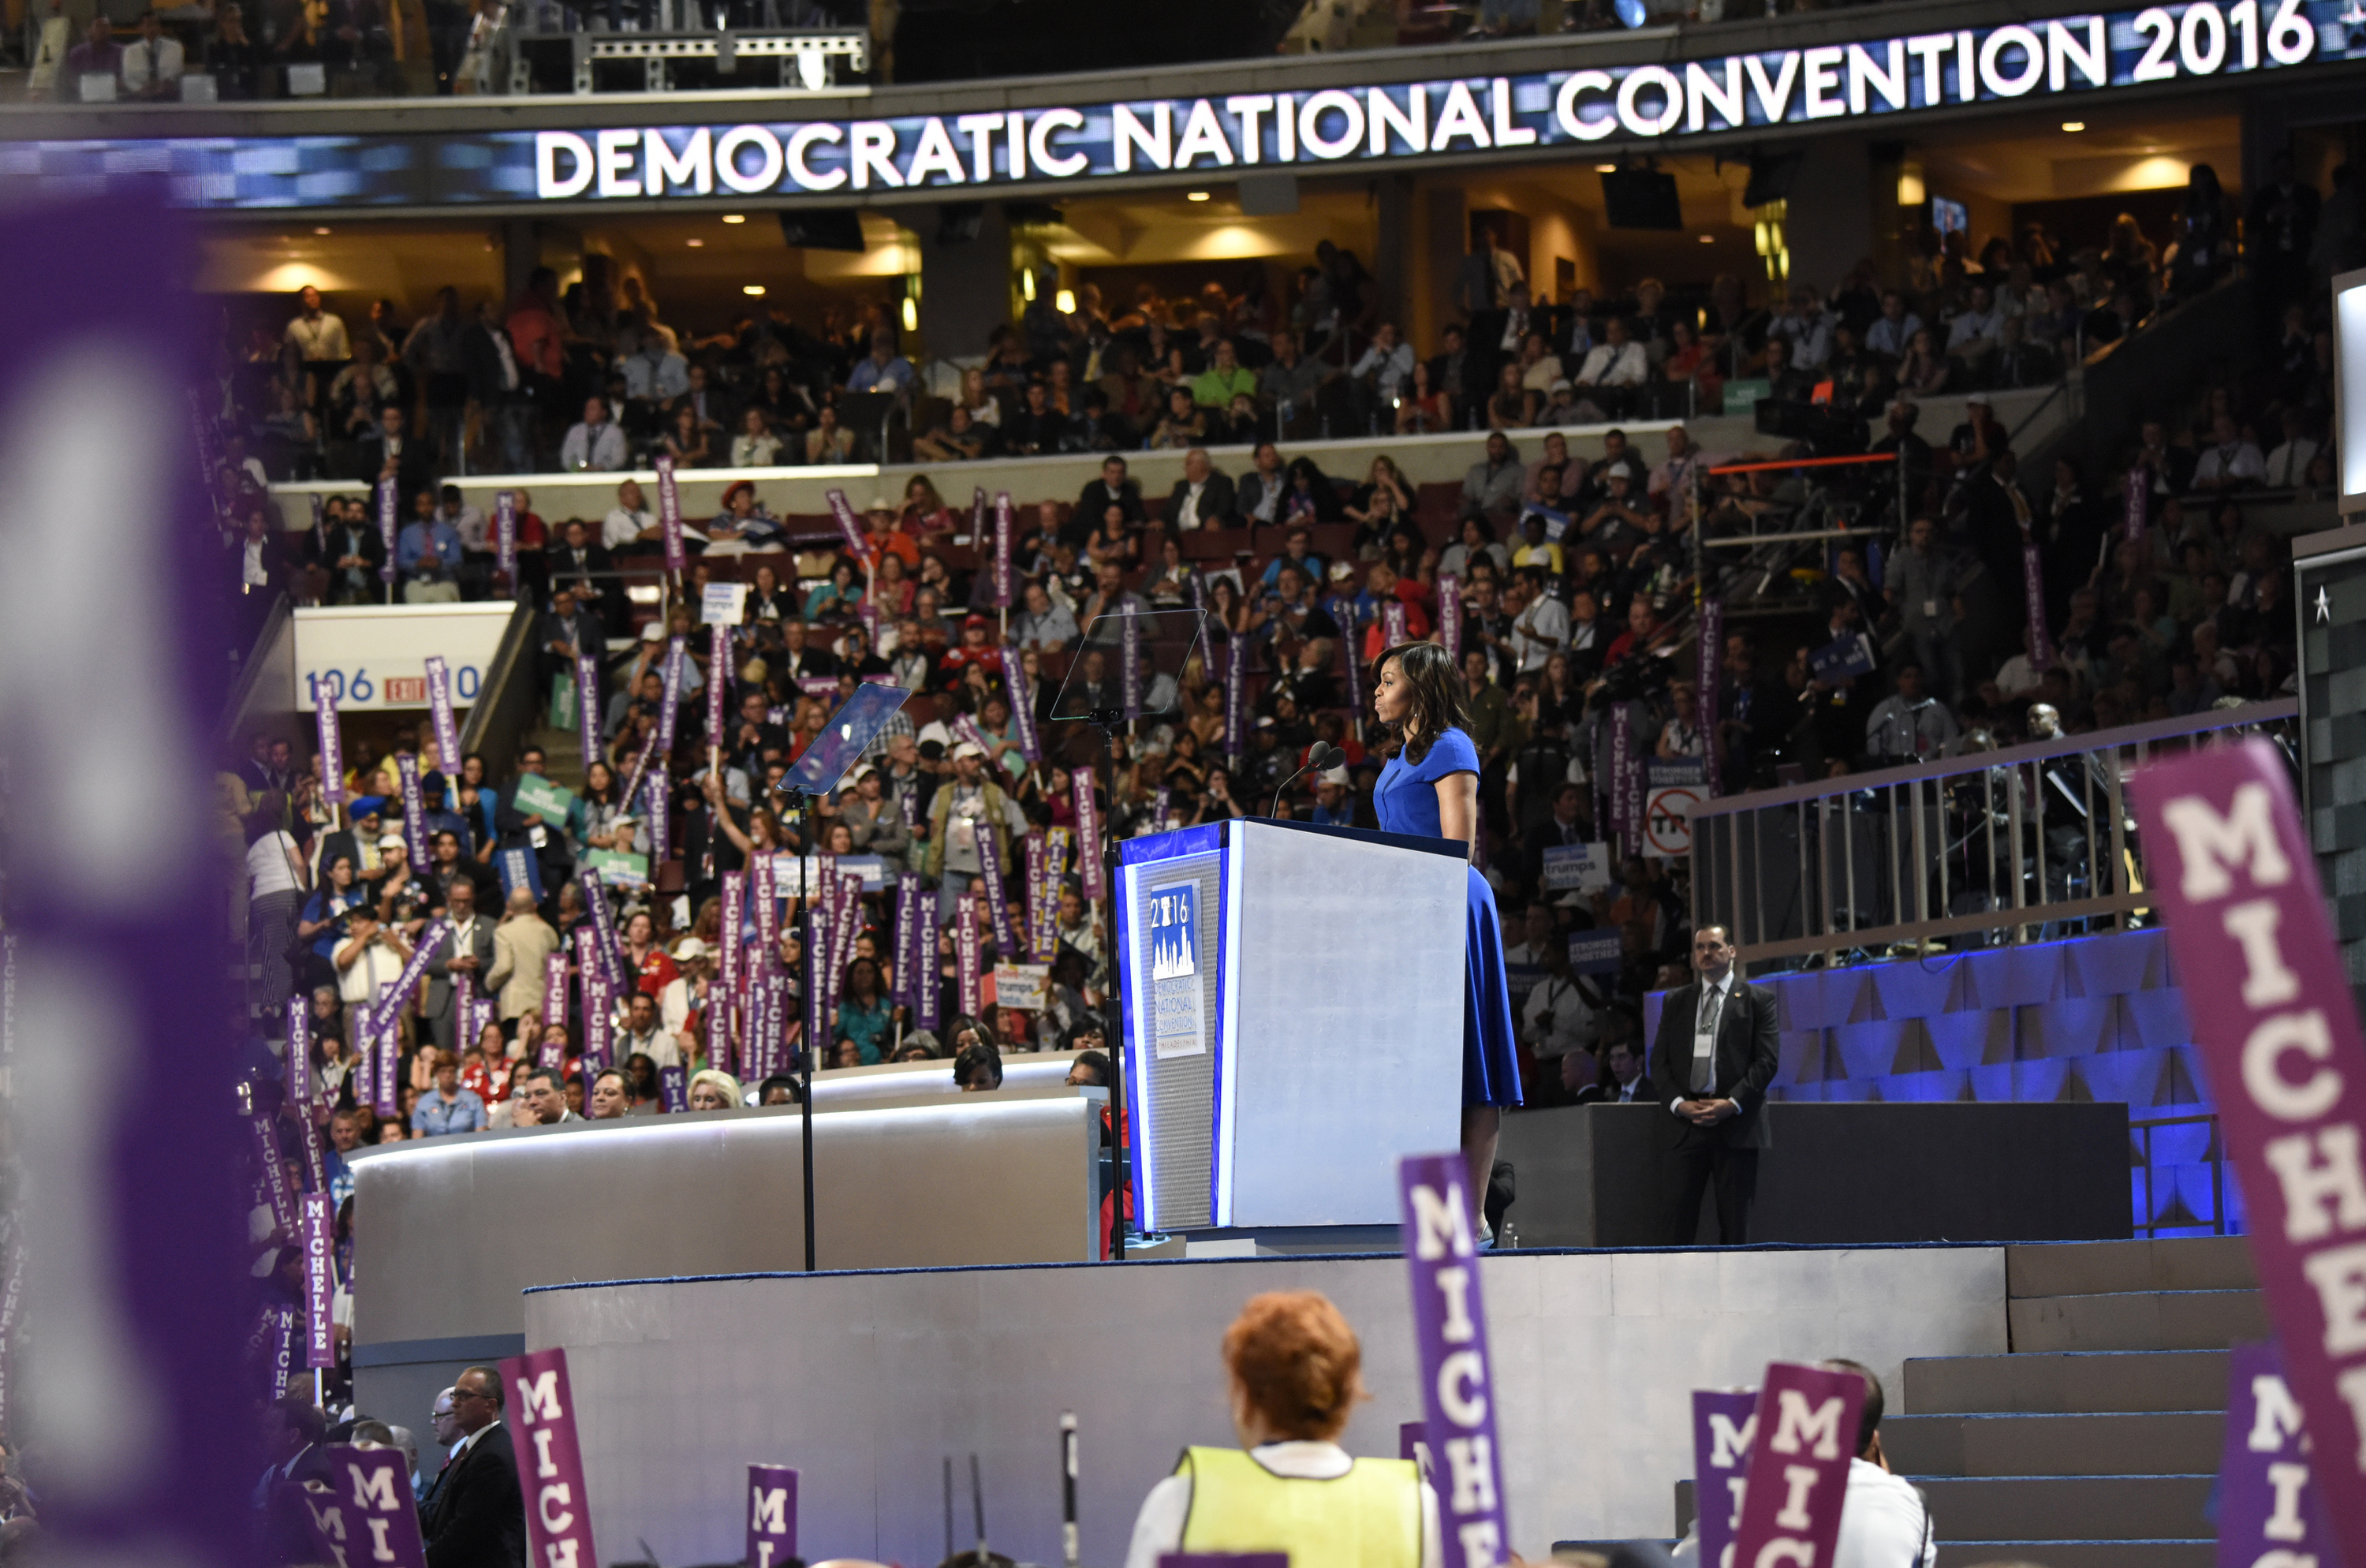 First Lady Michelle Obama speaks at the Democratic National Convention in Philadelphia, Penn., on July 26.